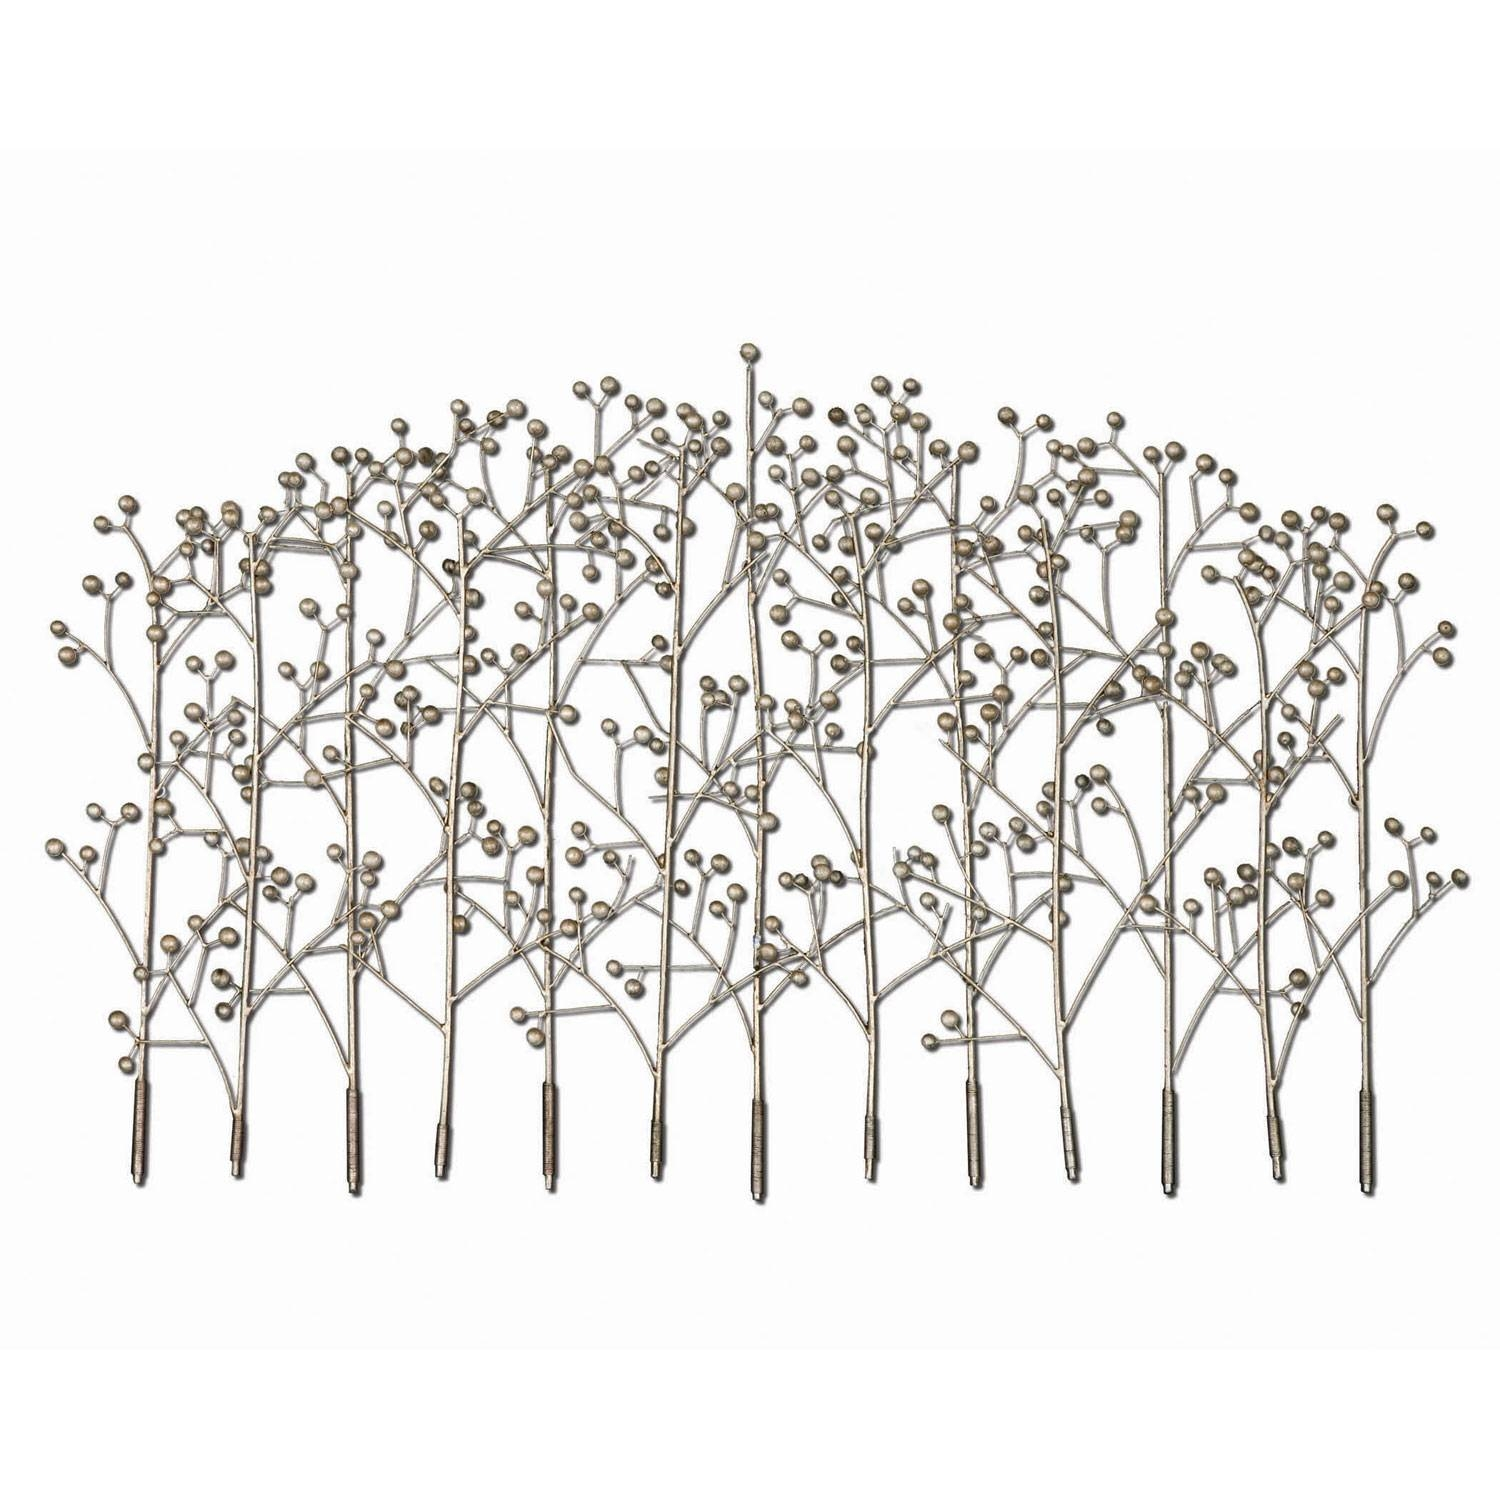 Iron Trees Metal Wall Art Uttermost Wall Sculpture Wall Decor Home With Latest Metal Wall Art Tree (View 9 of 20)